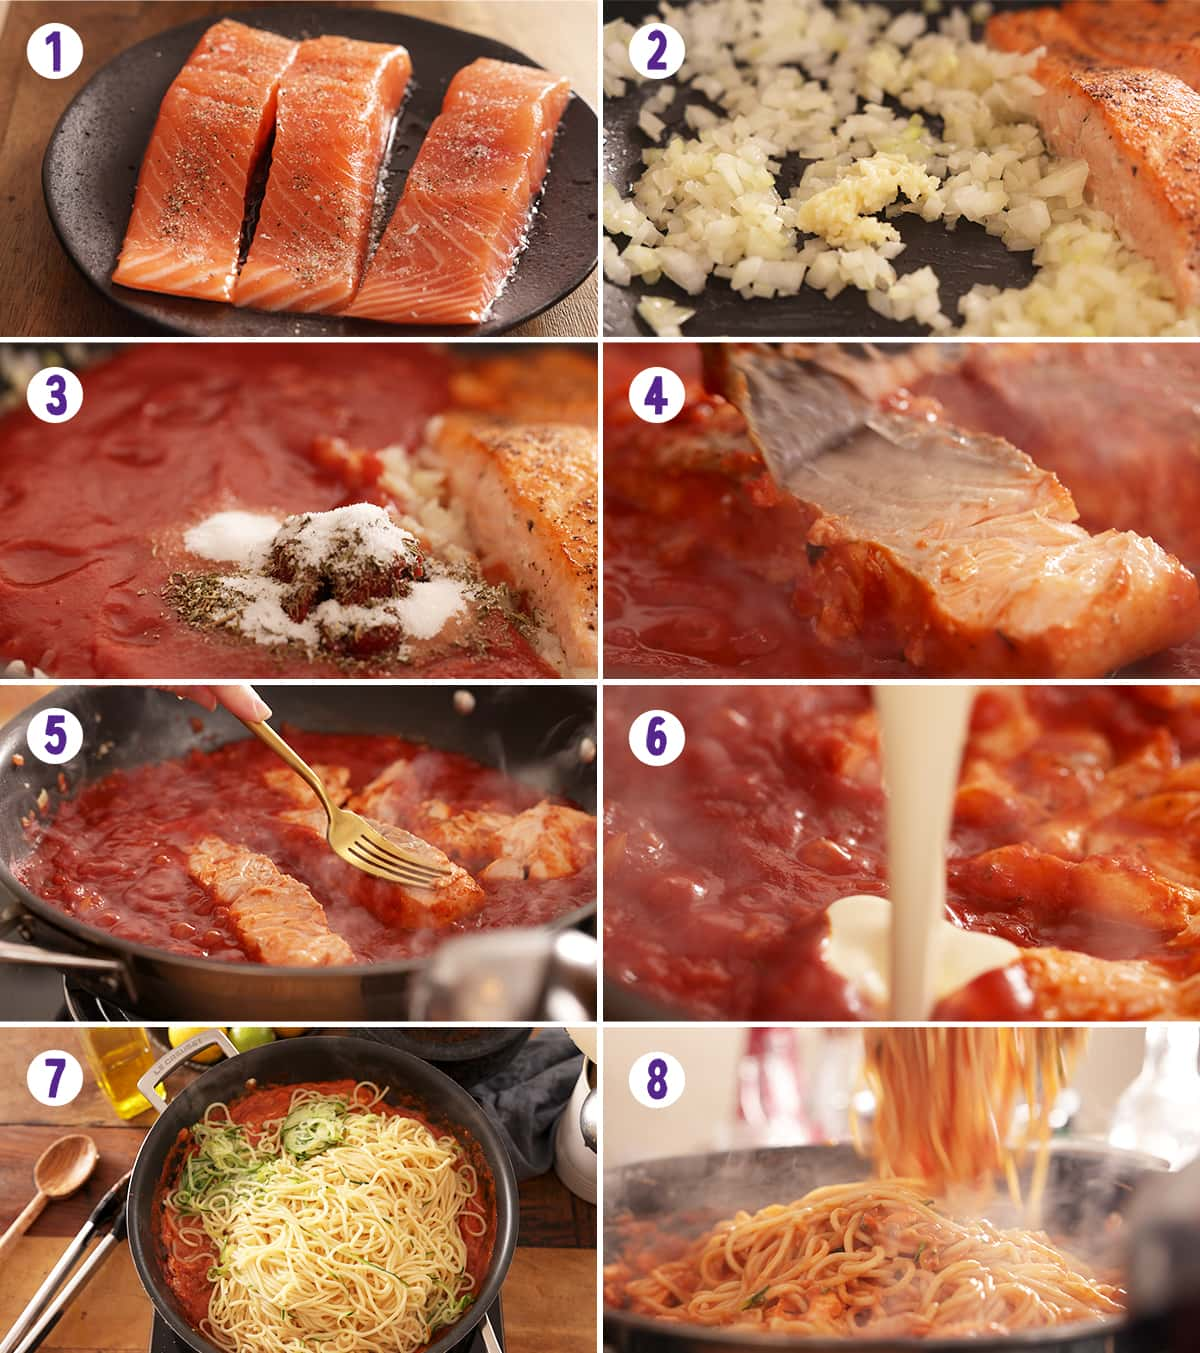 8 image collage showing how to make creamy tomato salmon and pasta.